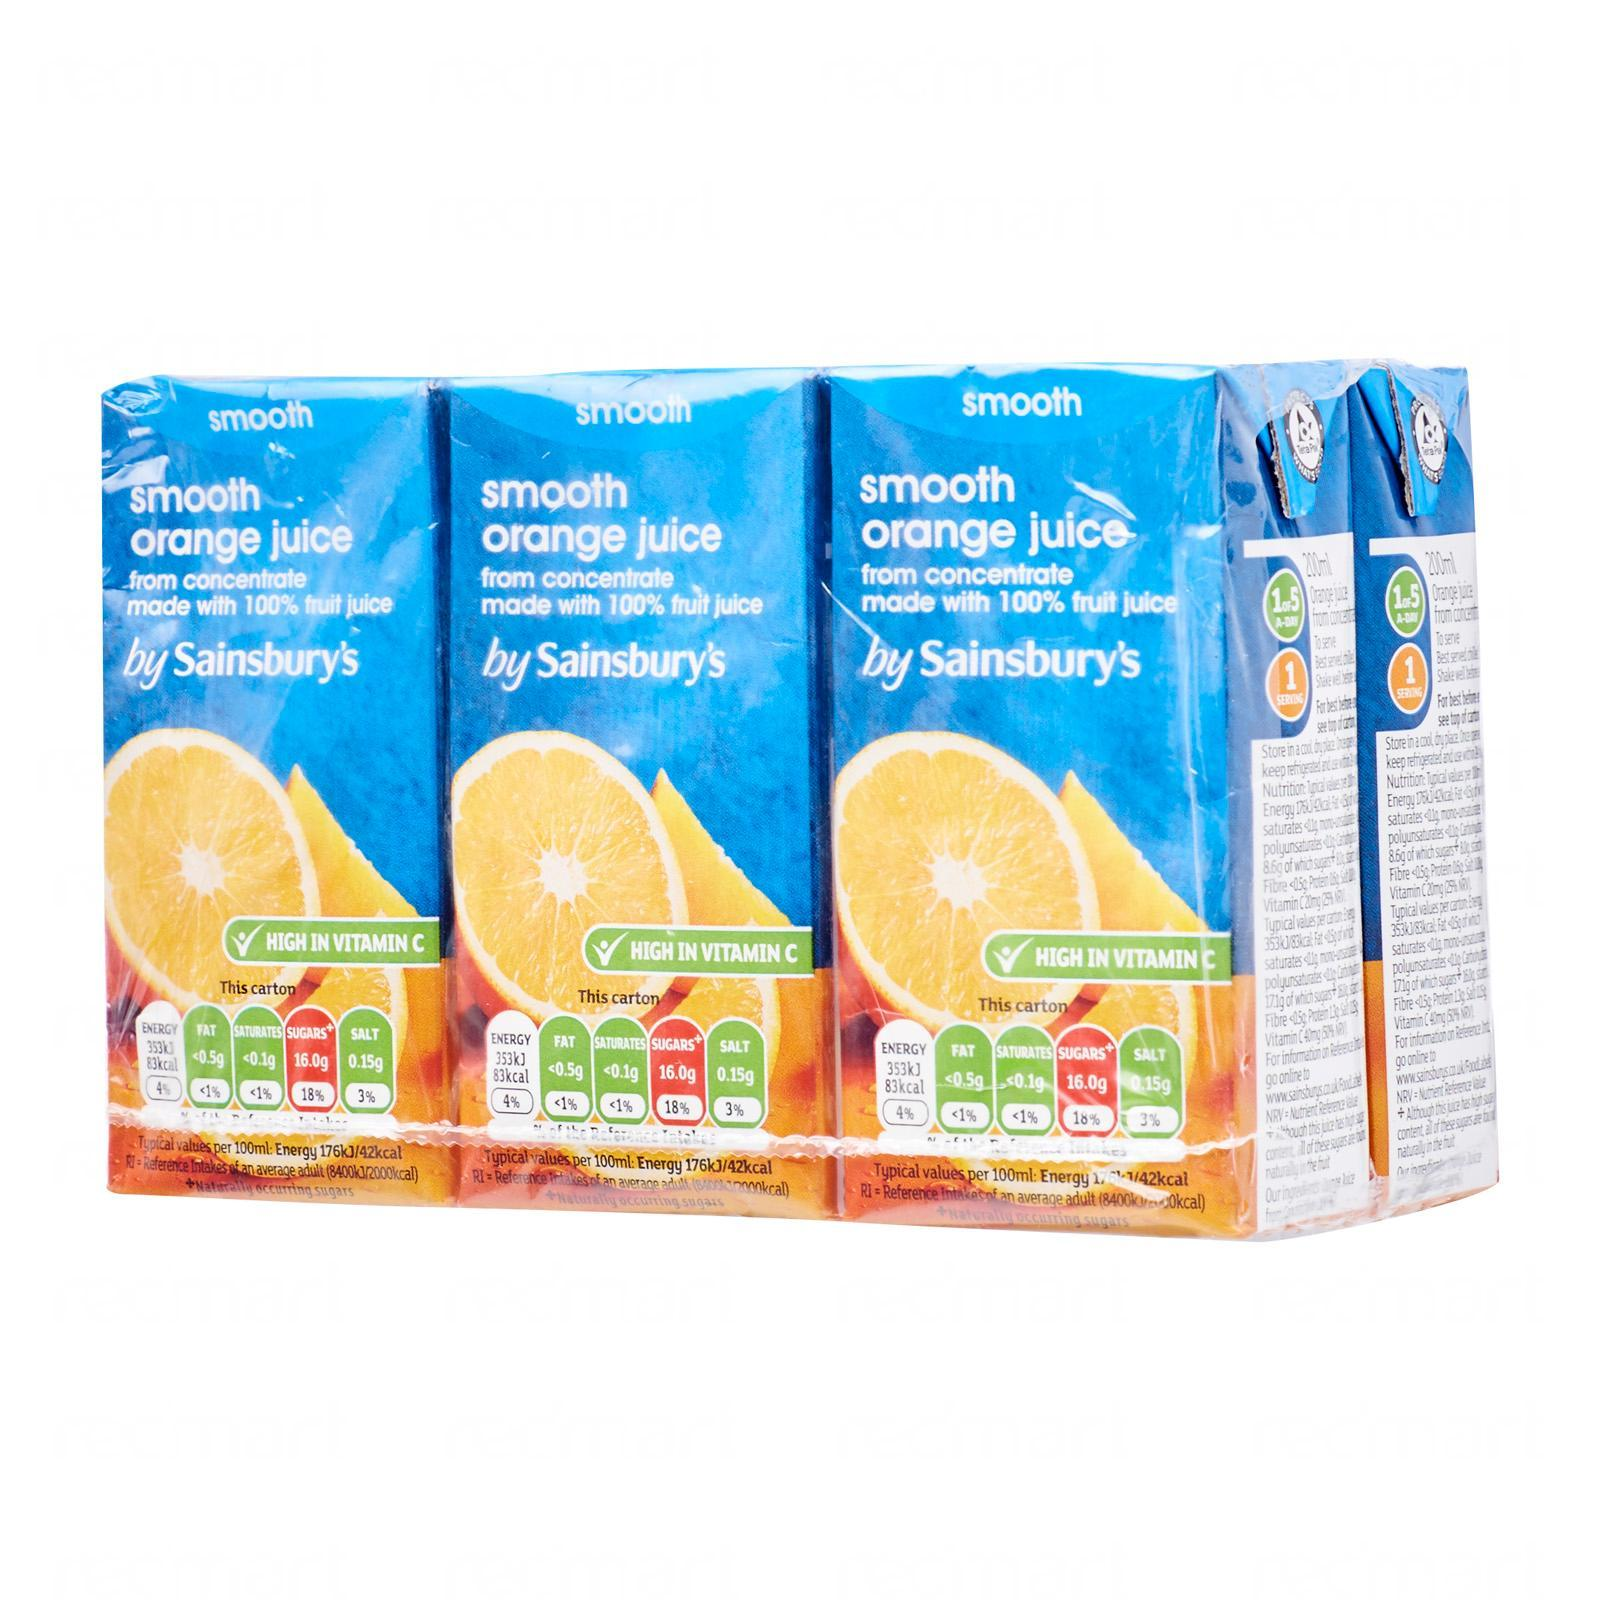 Sainsbury's Pure Orange Juice